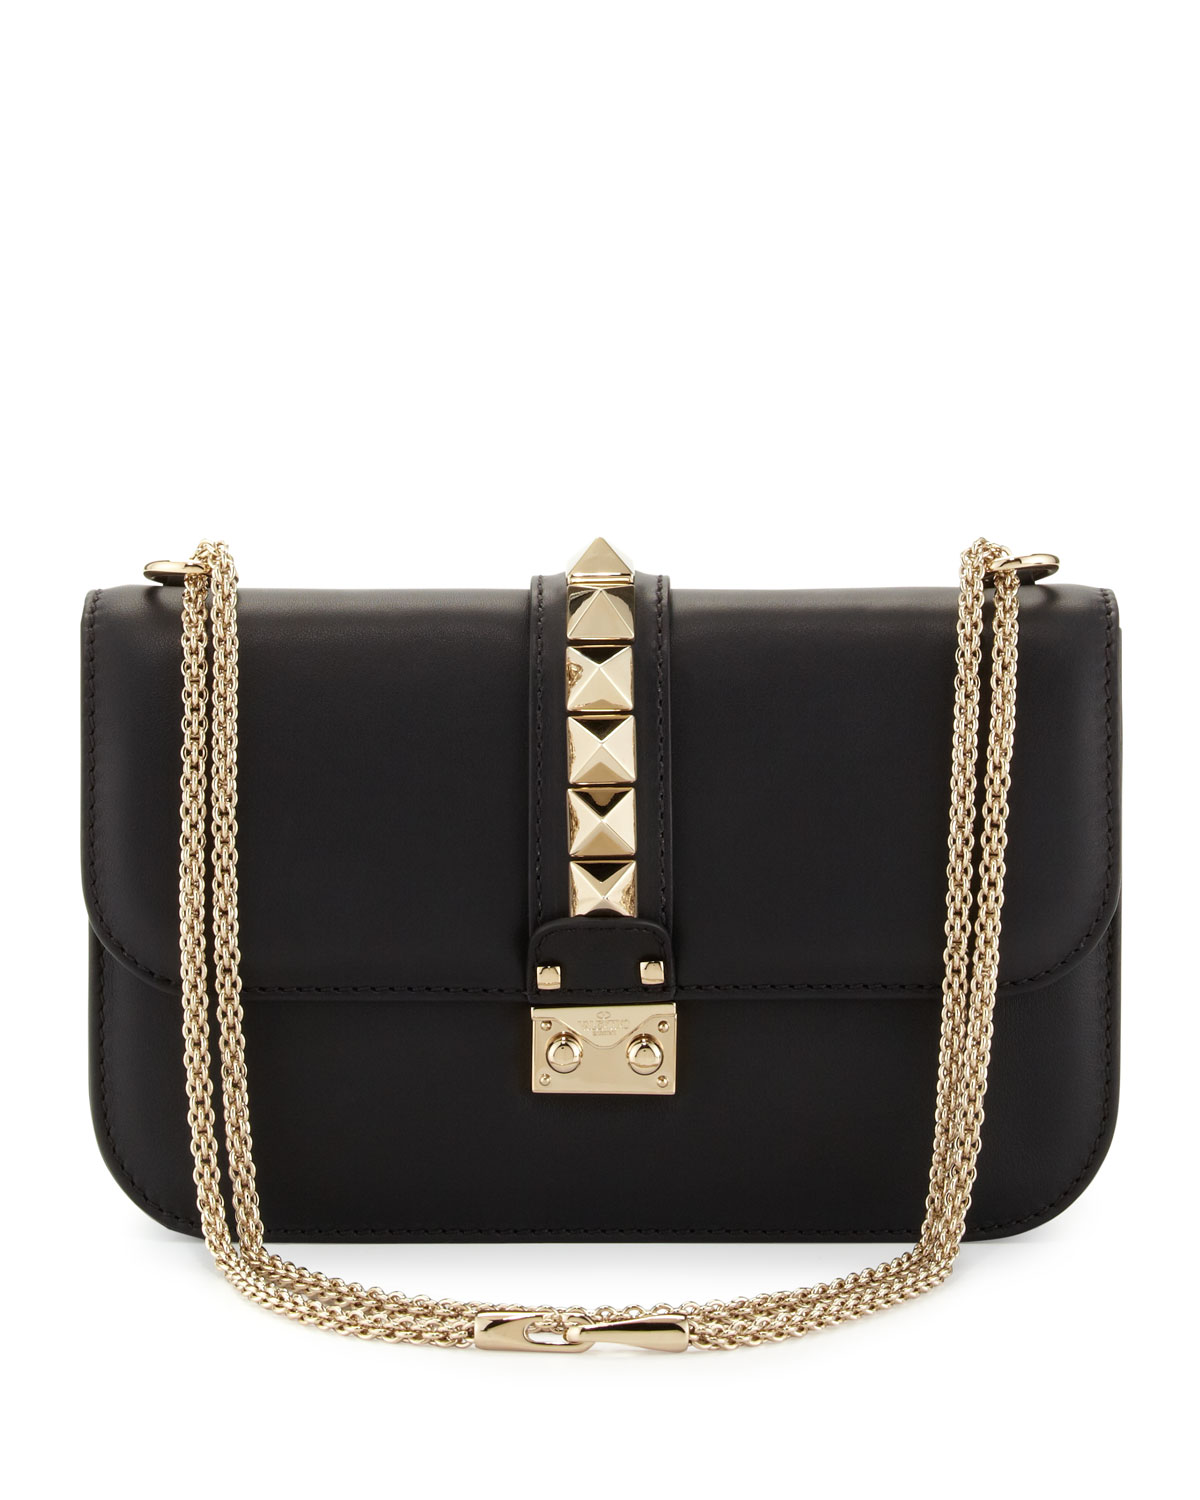 Rockstud Flap Shoulder Bag, Black - Valentino